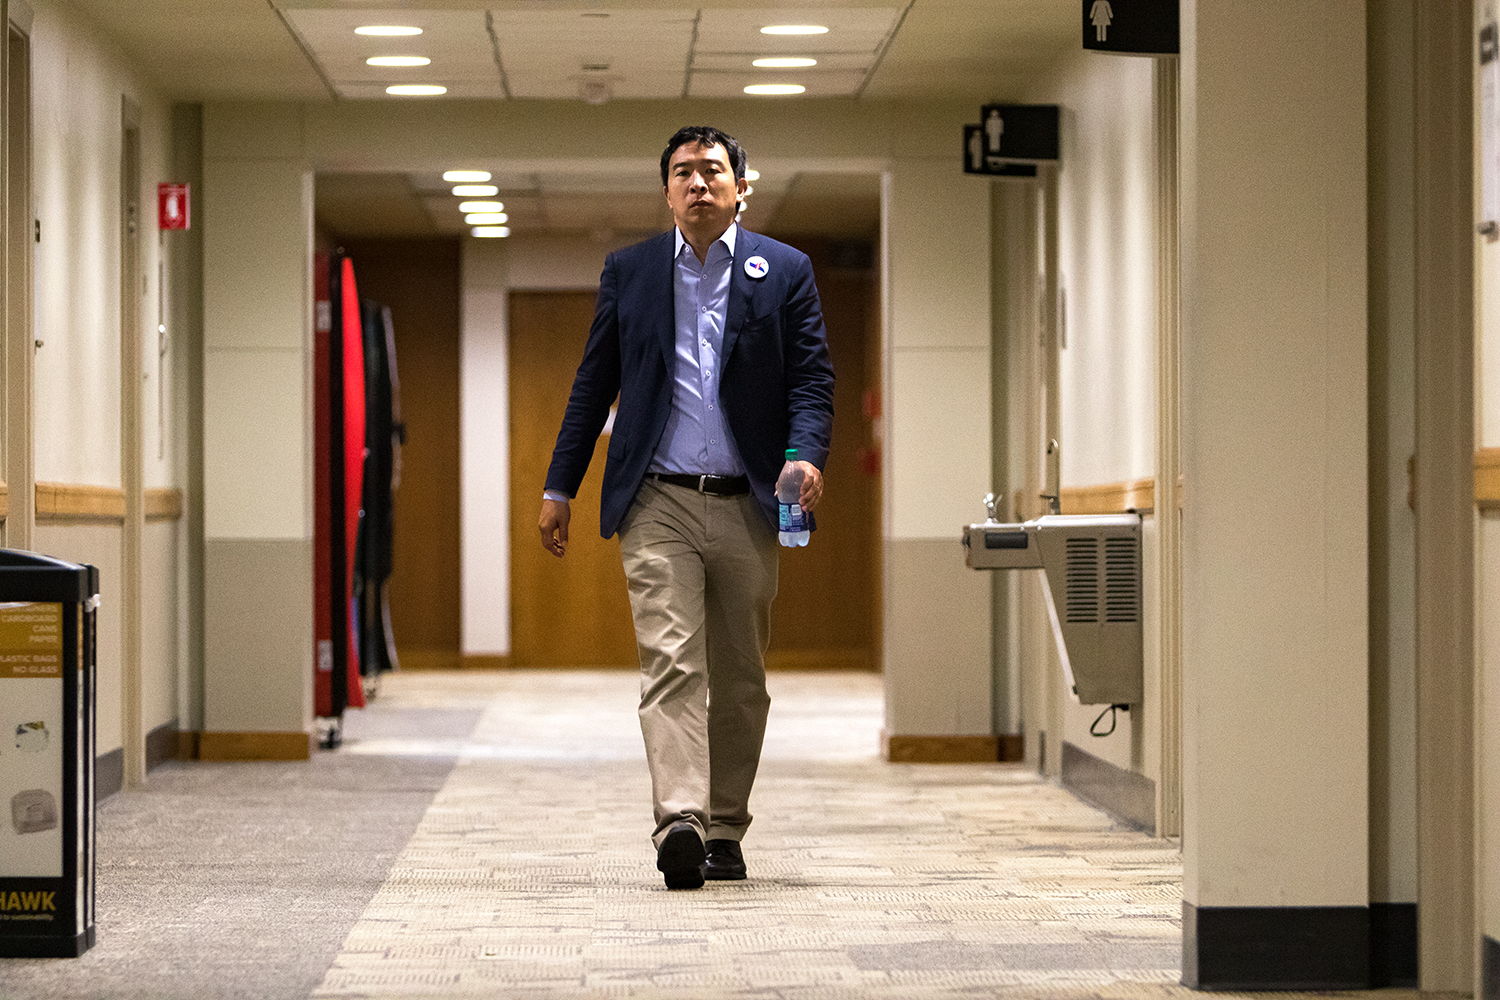 Democratic presidential candidate Andrew Yang walks down a hallway in the Iowa Memorial Union on the University of Iowa campus before an appearance sponsored by the college Democrats on Monday, Sep. 24, 2018.